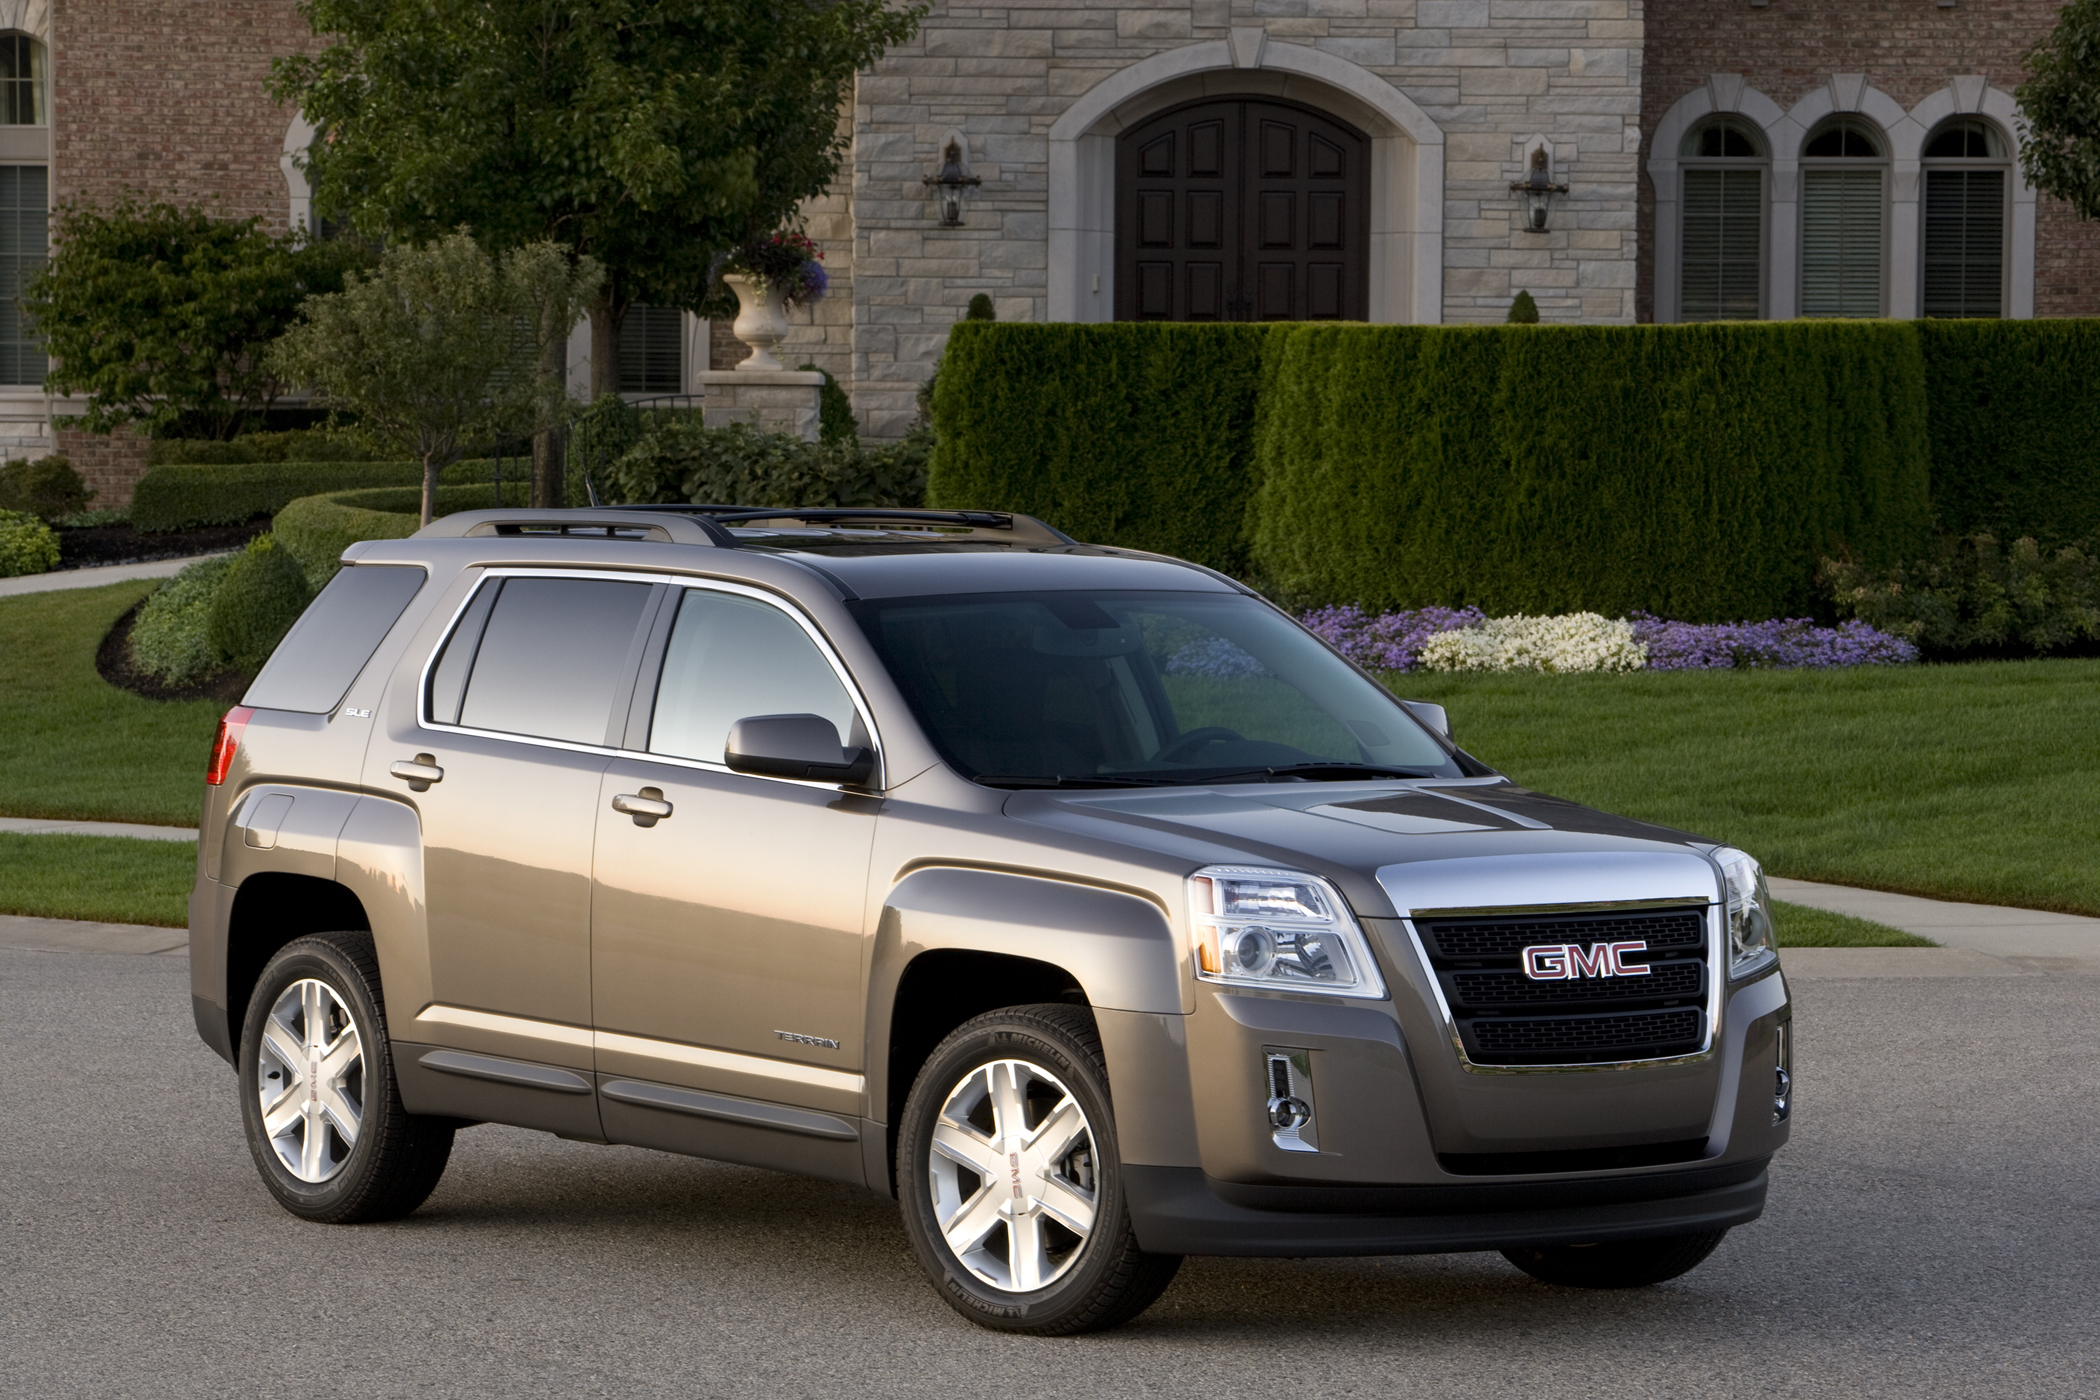 2012 Gmc Terrain Standout In Fuel Efficiency In Suv Class Get Off The Road Groovecar